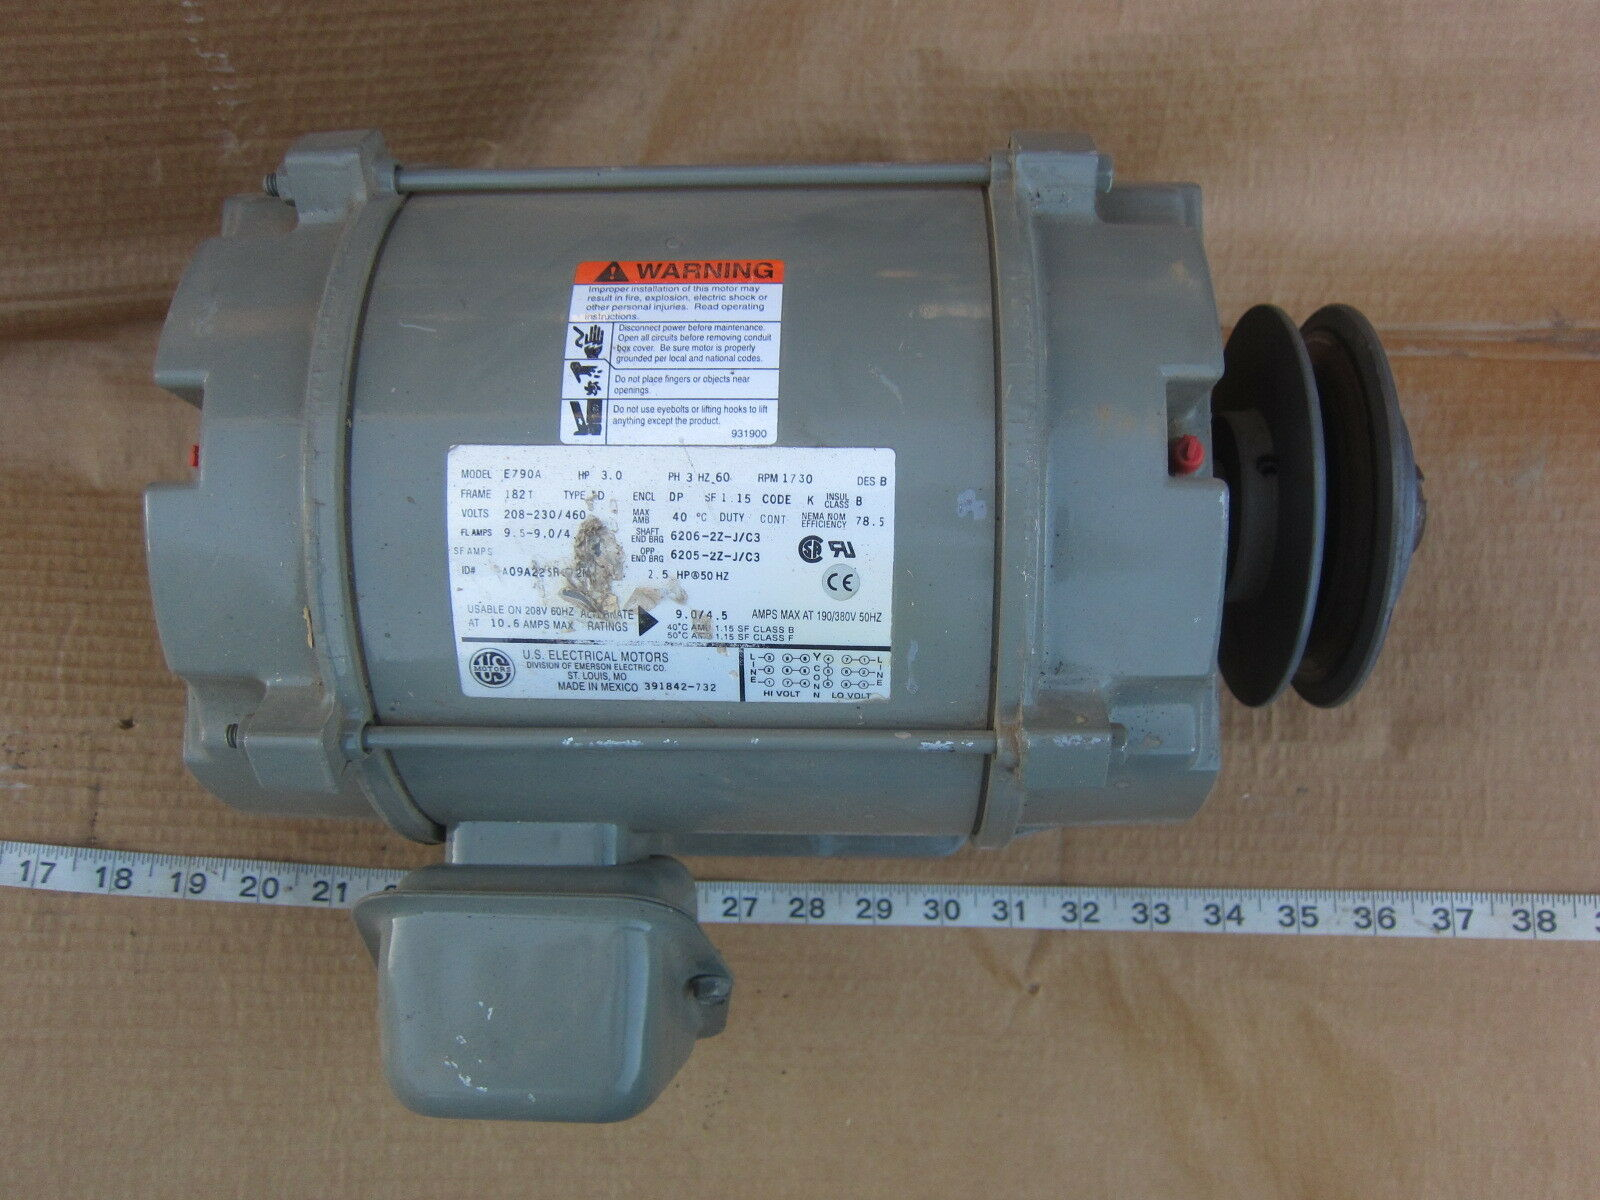 Emerson Carrier E790a 3p 230 460v 3hp Blower Fan Motor Used Installing Electric On A C3 1 Of 5only 2 Available